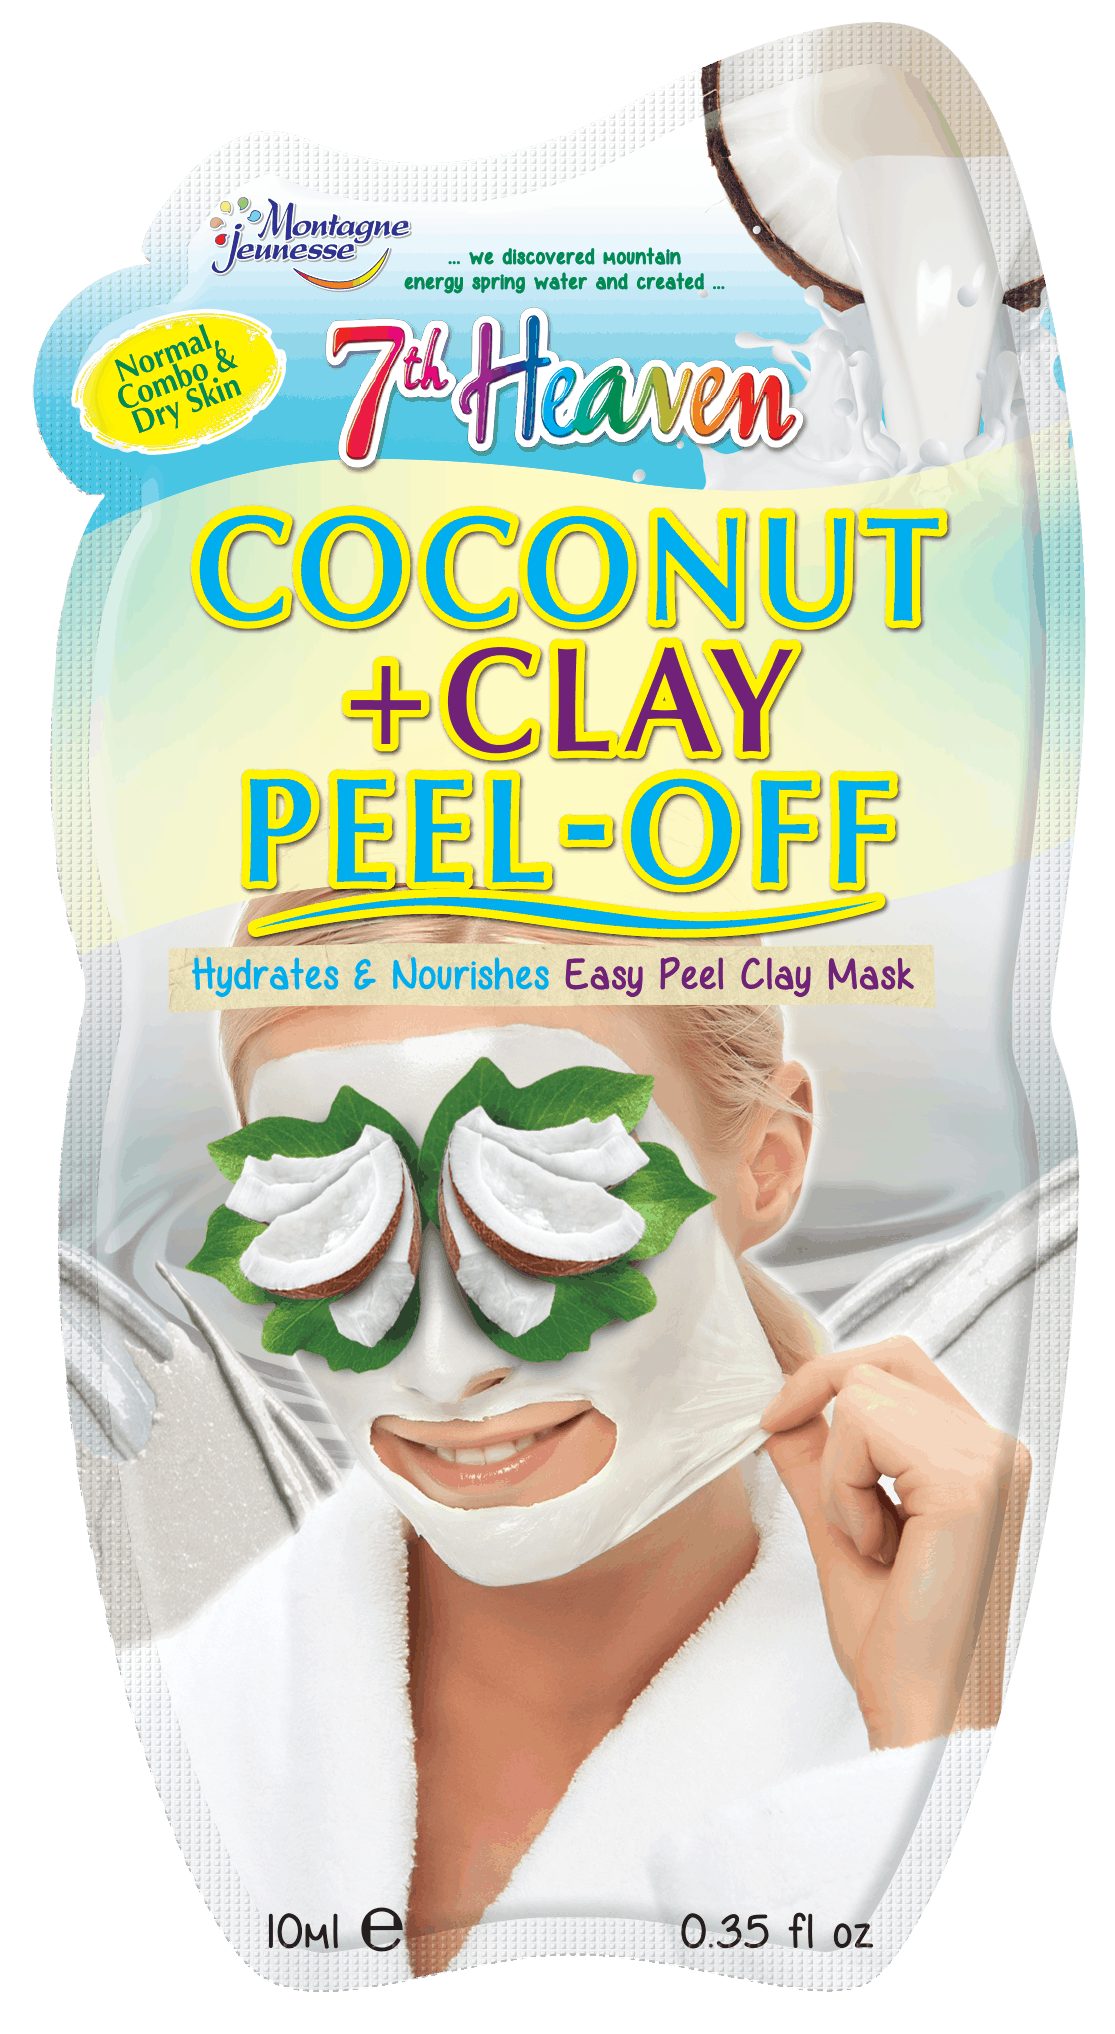 7th heaven peel off mask 2019 Holiday Gift Guide for All Ages